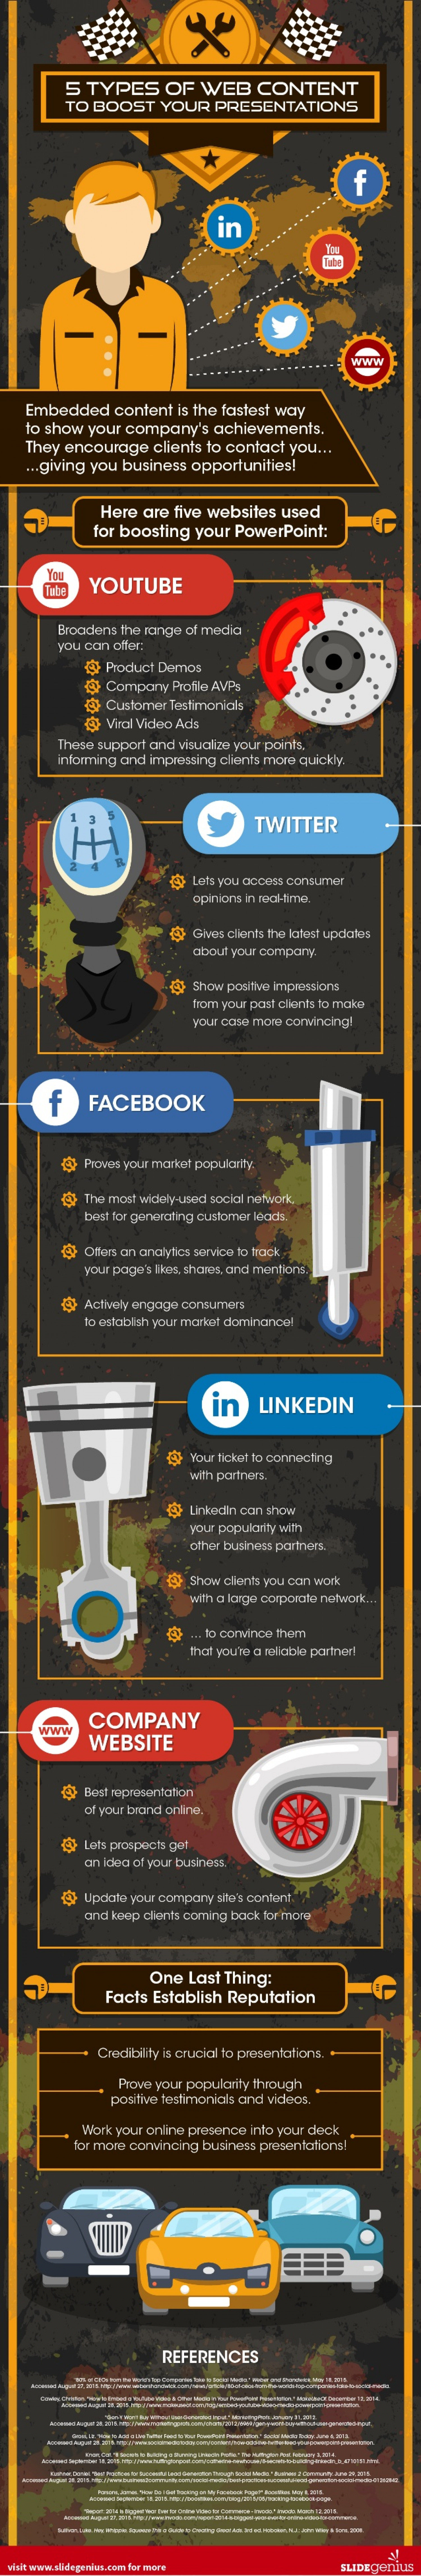 5 Types of Web Content to Boost Your Business Presentations Infographic